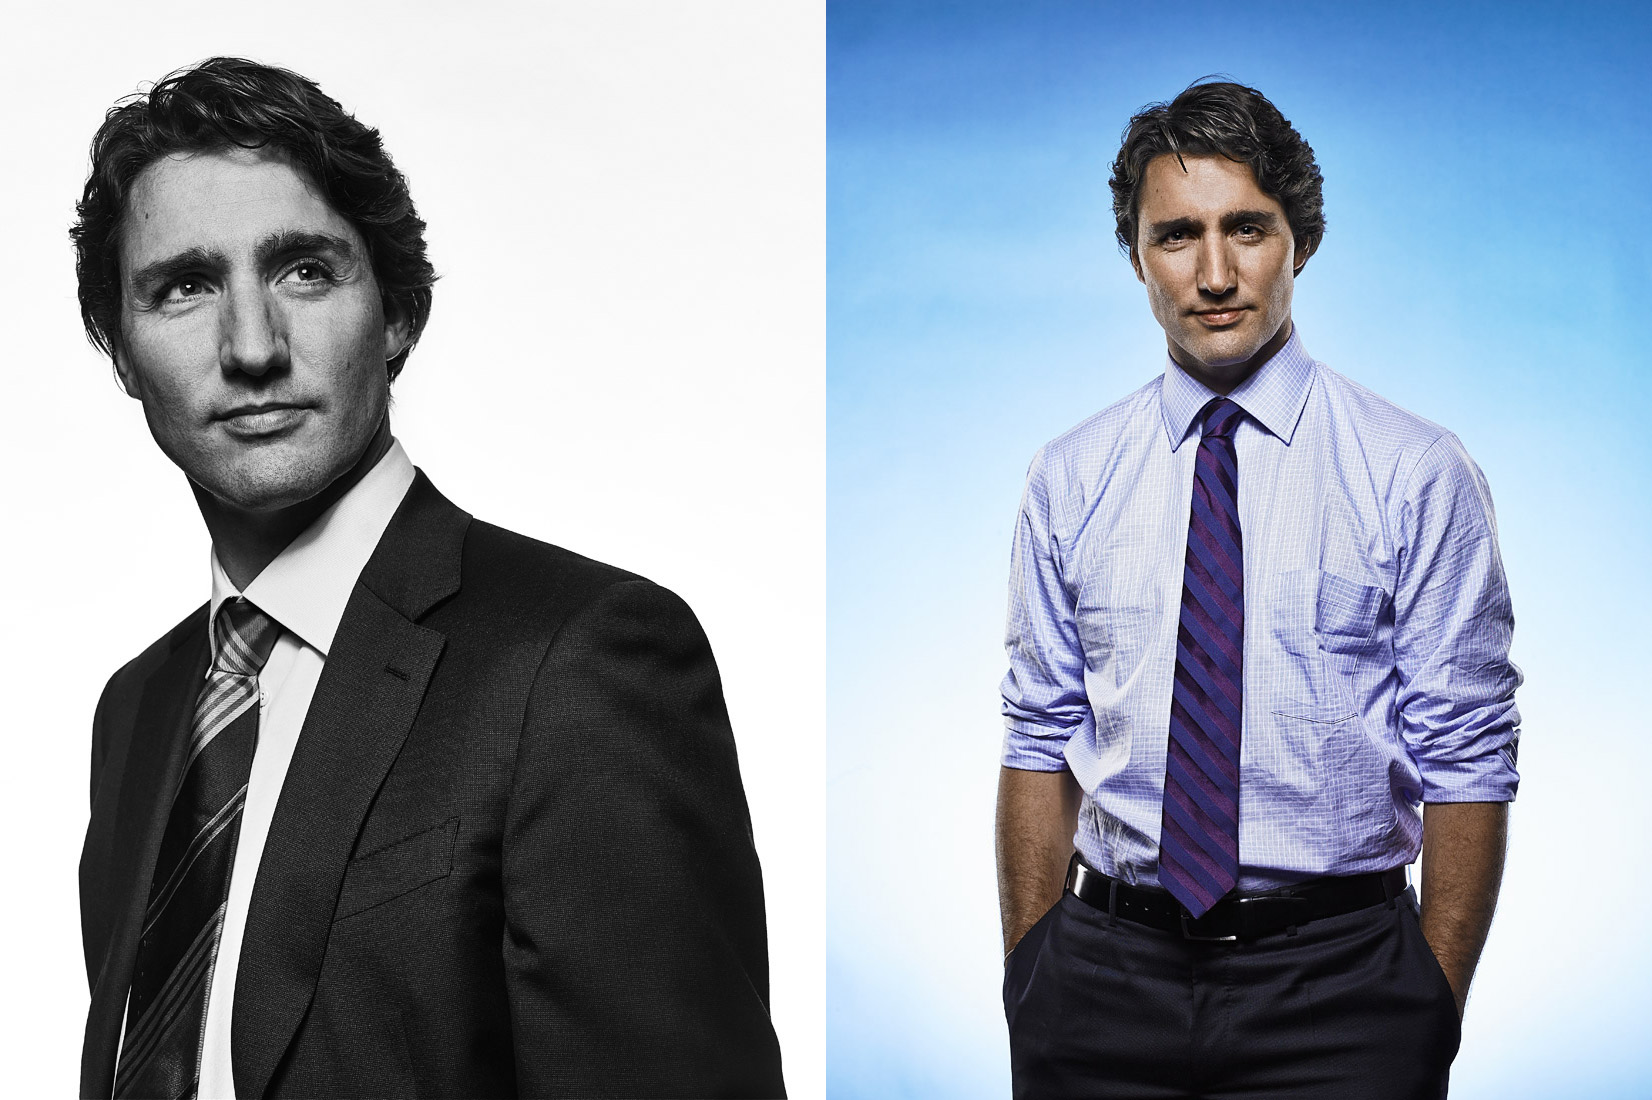 Prime Minister of Canada Justin Trudeau photographs by Vancouver Celebrity  Portrait photographer